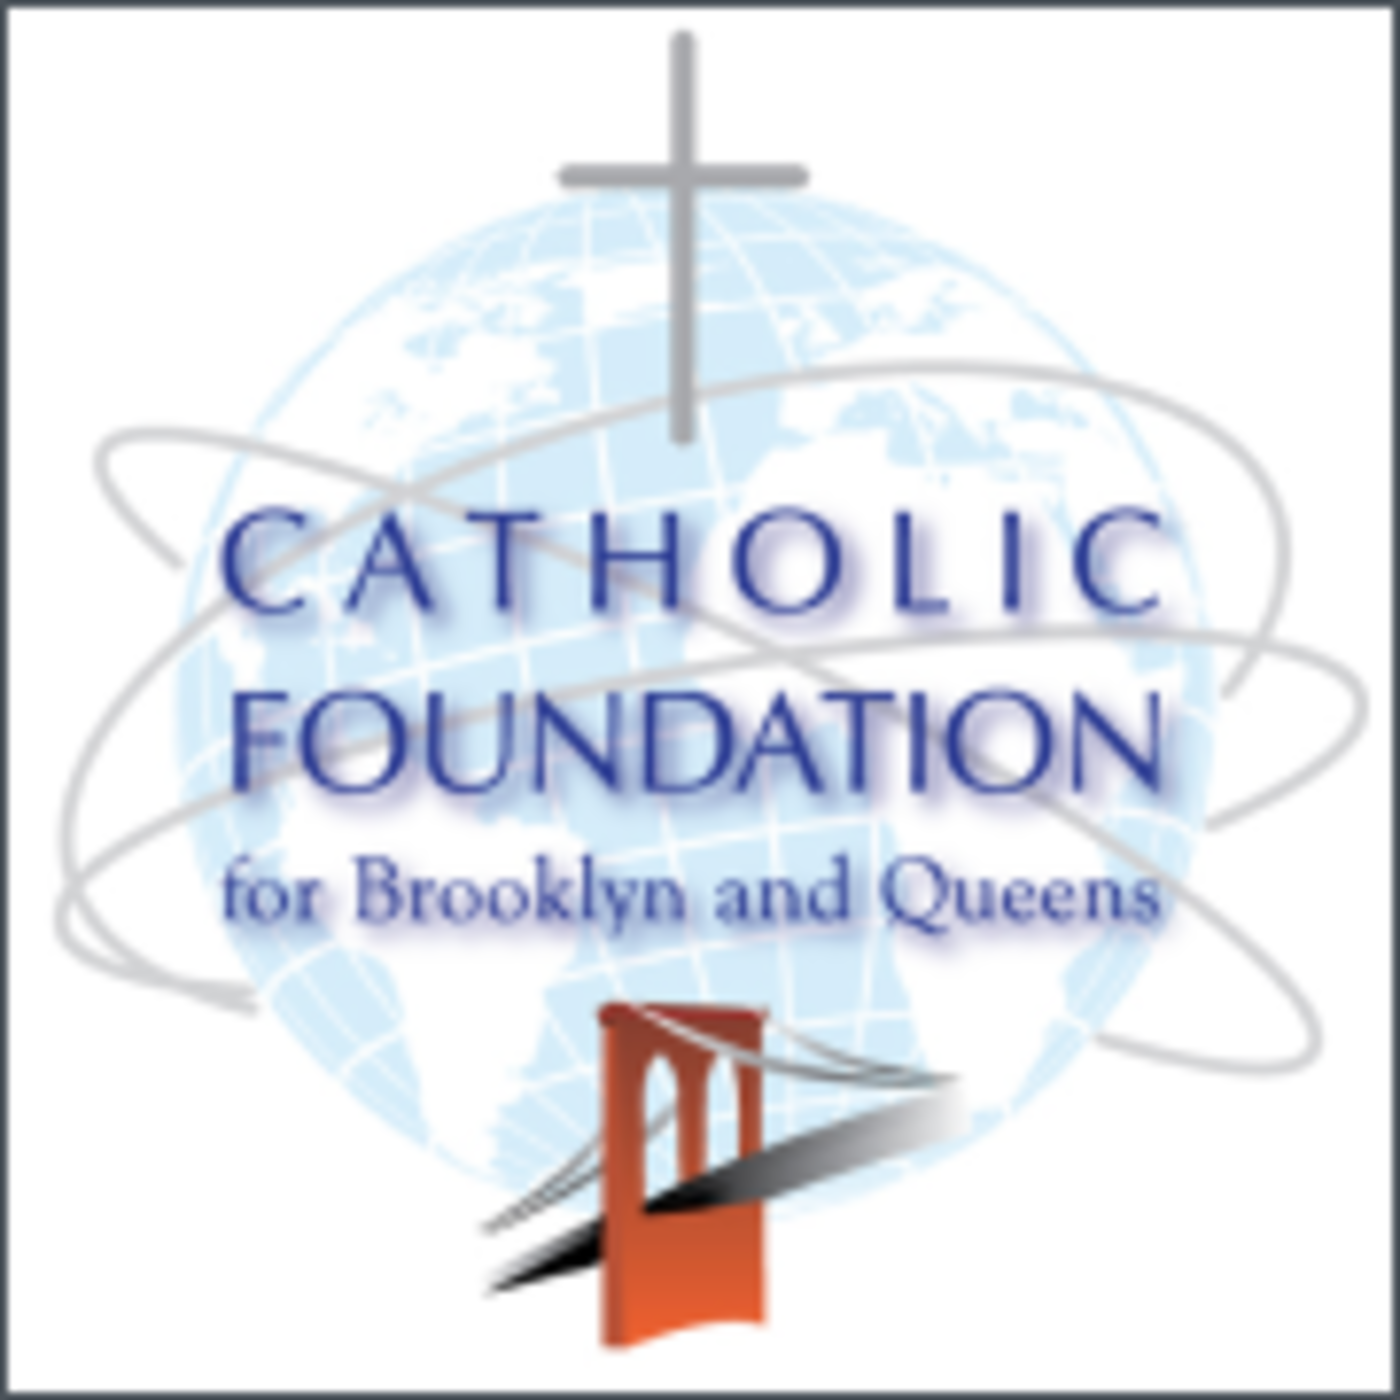 Catholic Foundation for Brooklyn and Queens